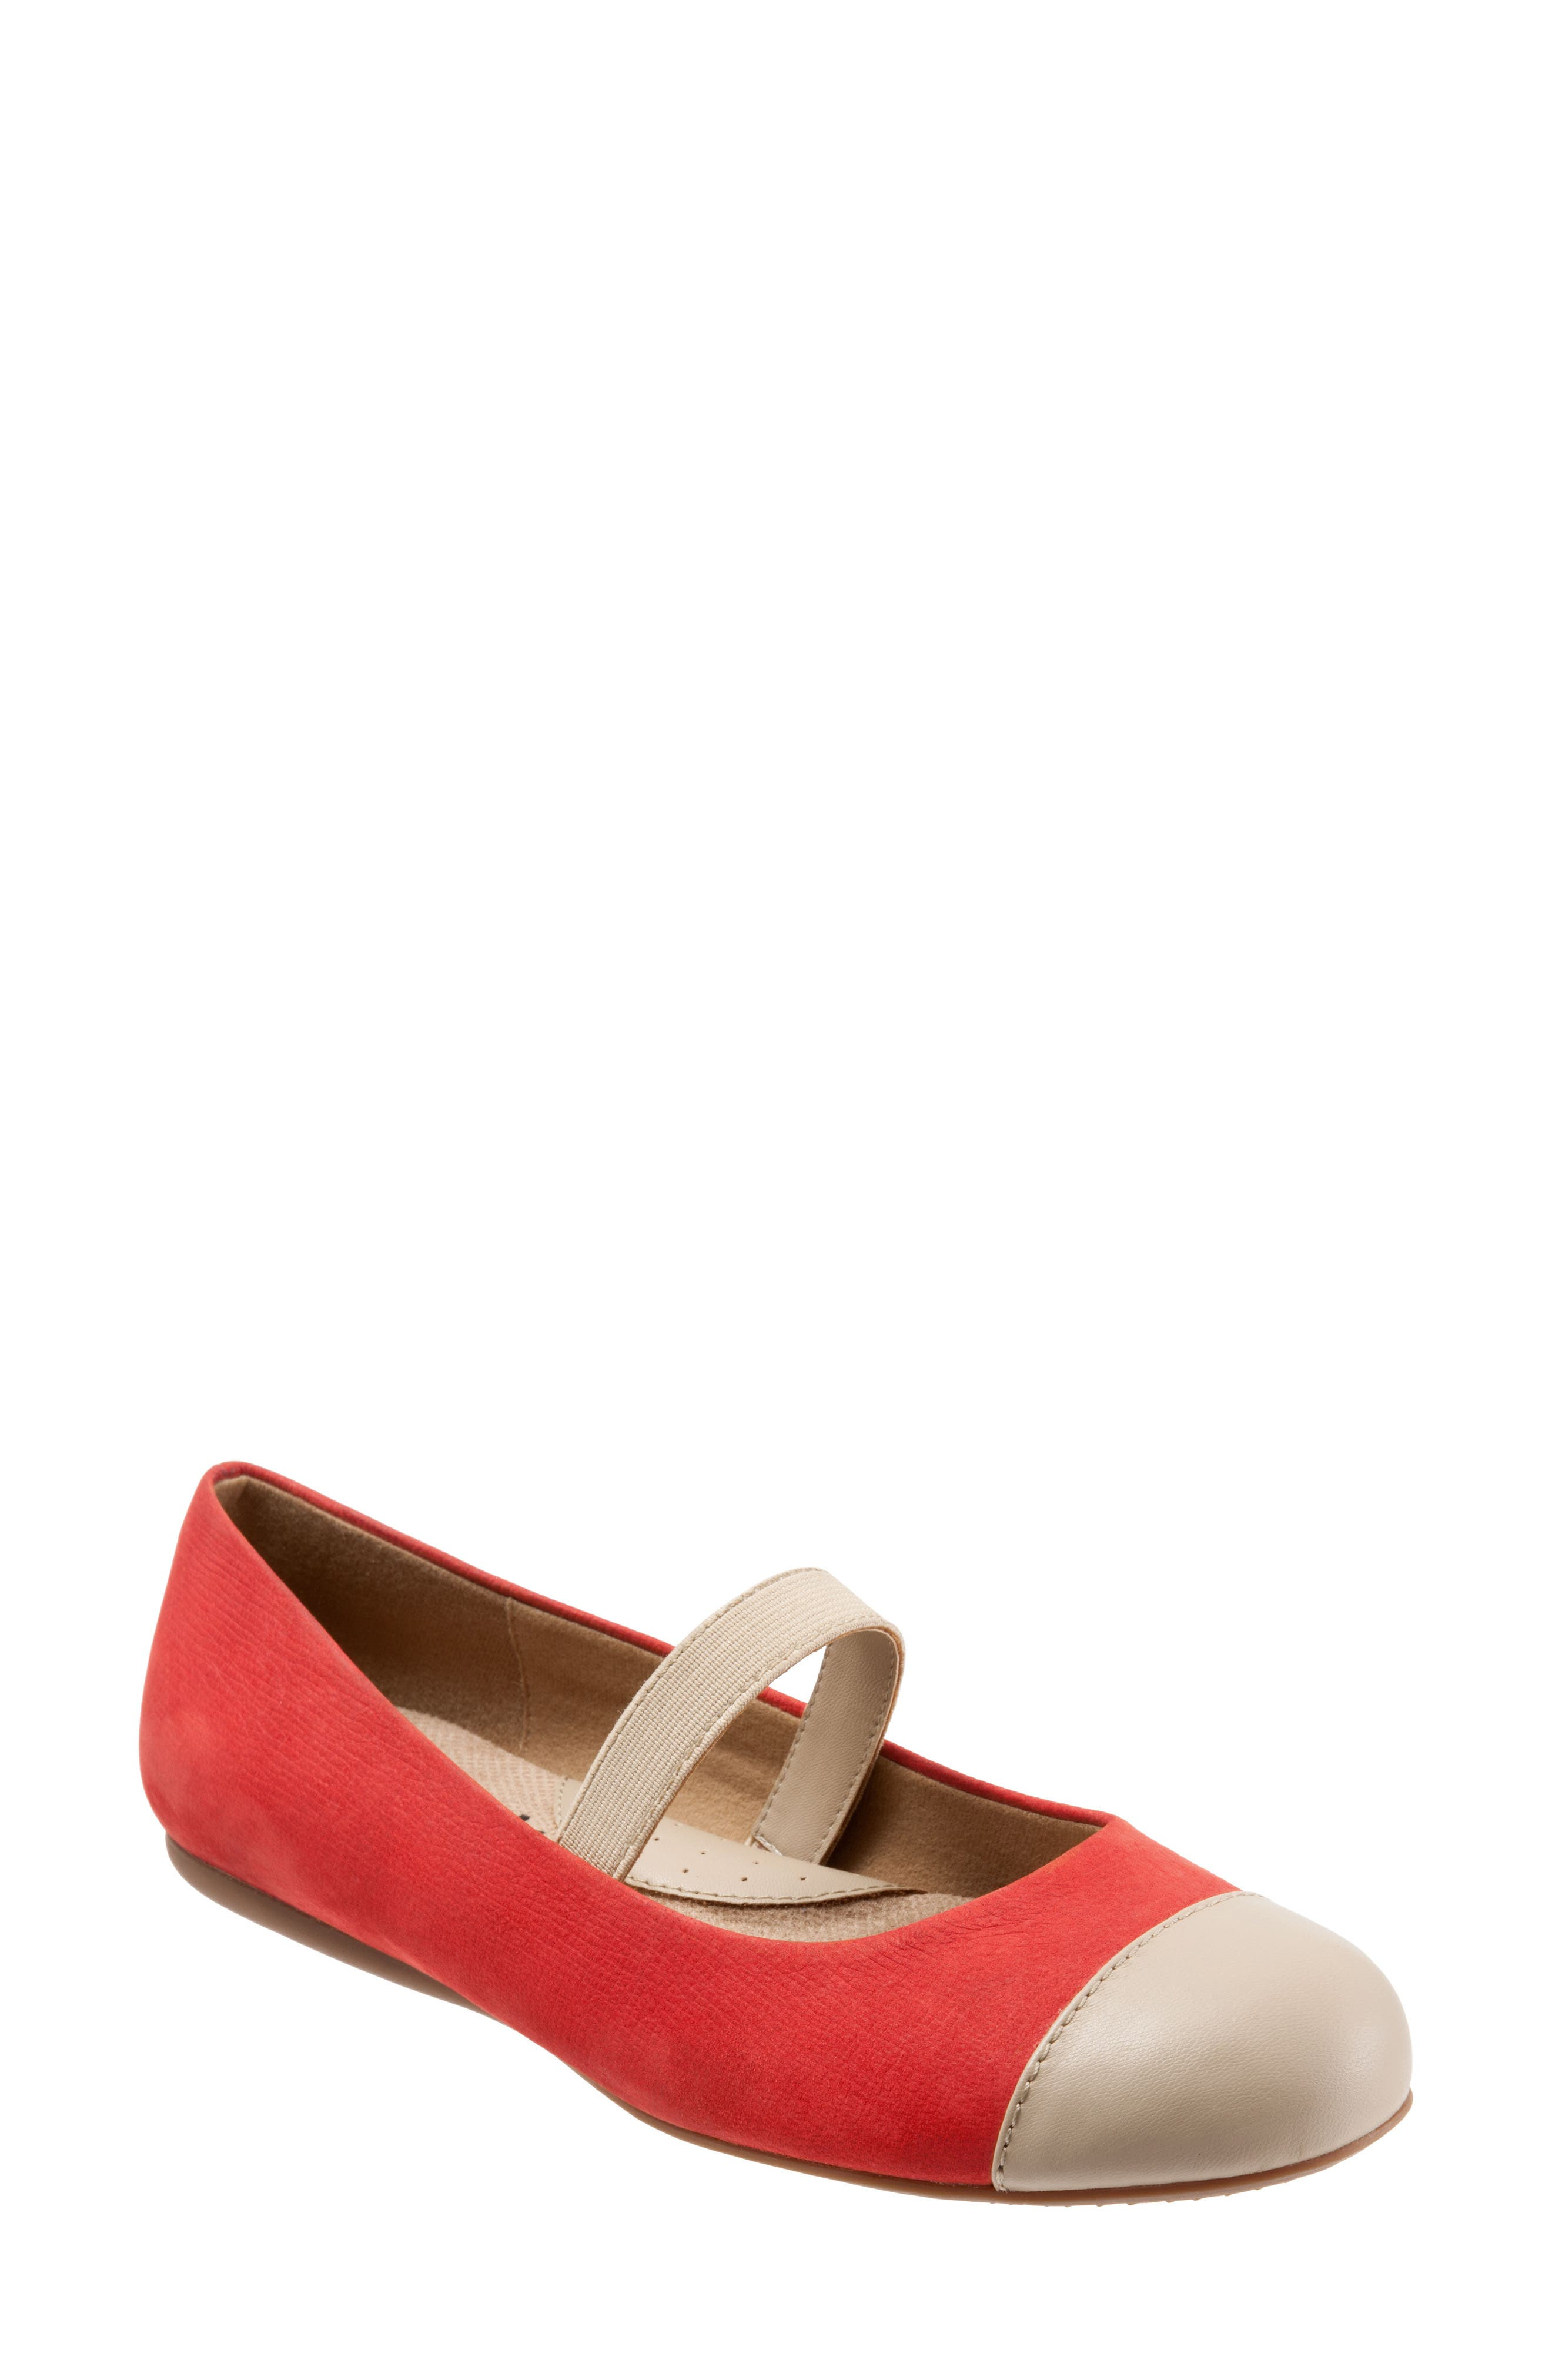 Napa Mary Jane Flat,                             Main thumbnail 1, color,                             Red/ Nude Leather